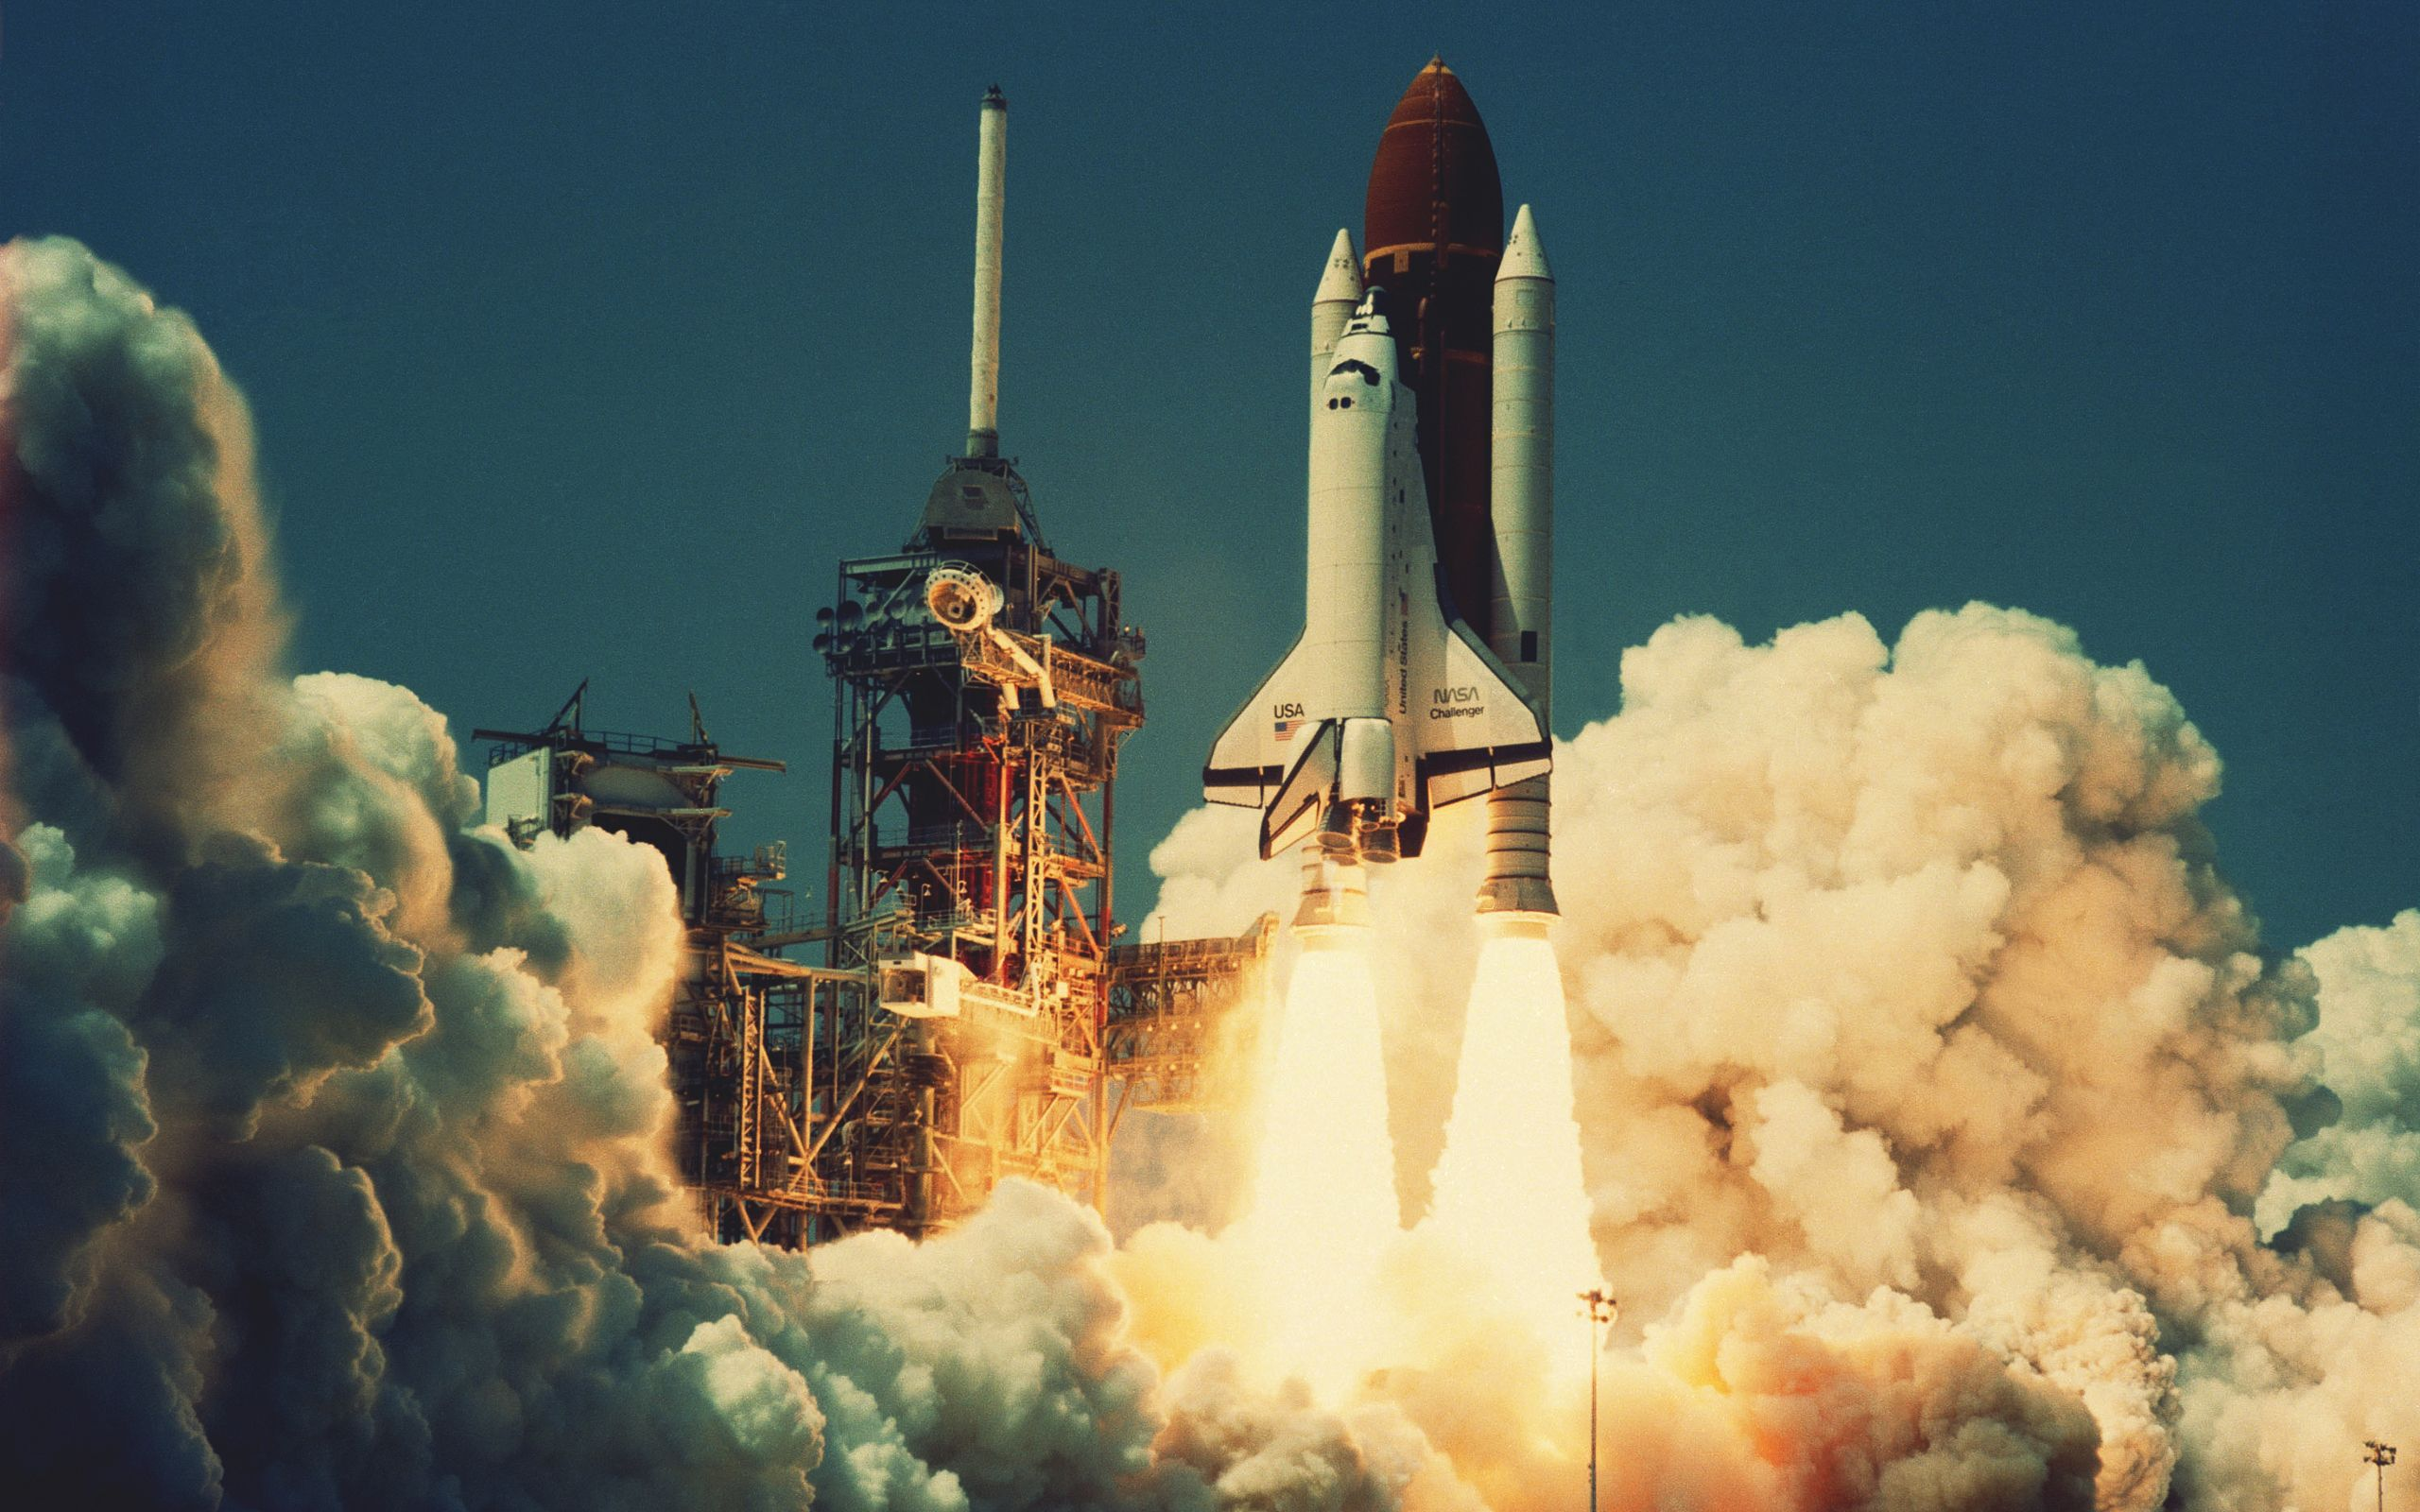 Rocket Launch Hd Wallpapers And Backgrounds - Space Shuttle , HD Wallpaper & Backgrounds